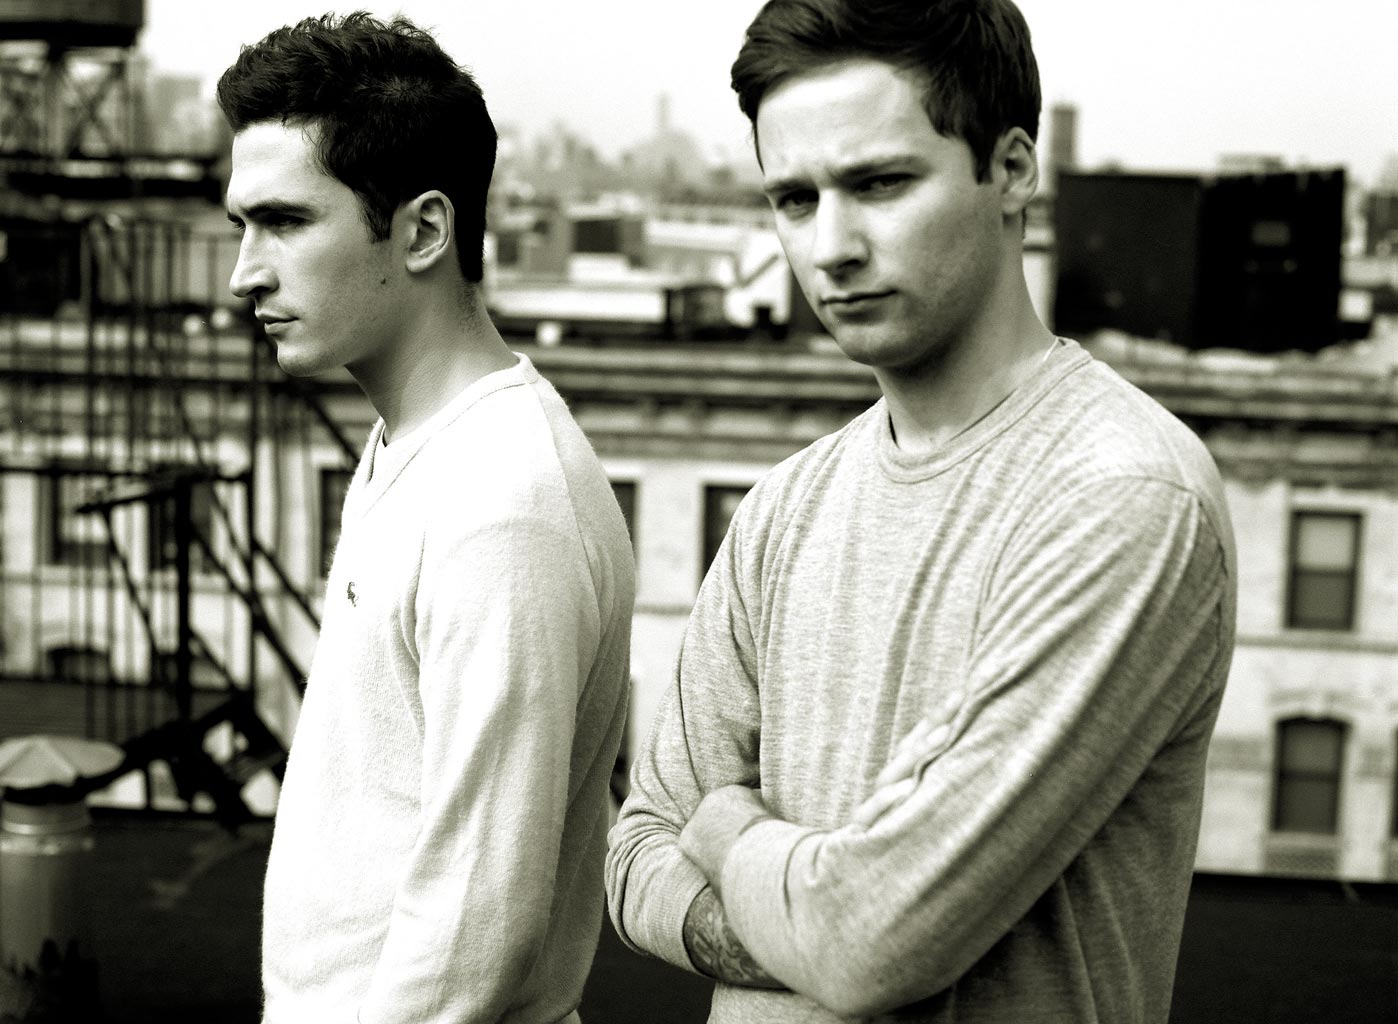 Lazaro Hernandez (left) + Jack McCollough: Proenza Schouler for The New York Times